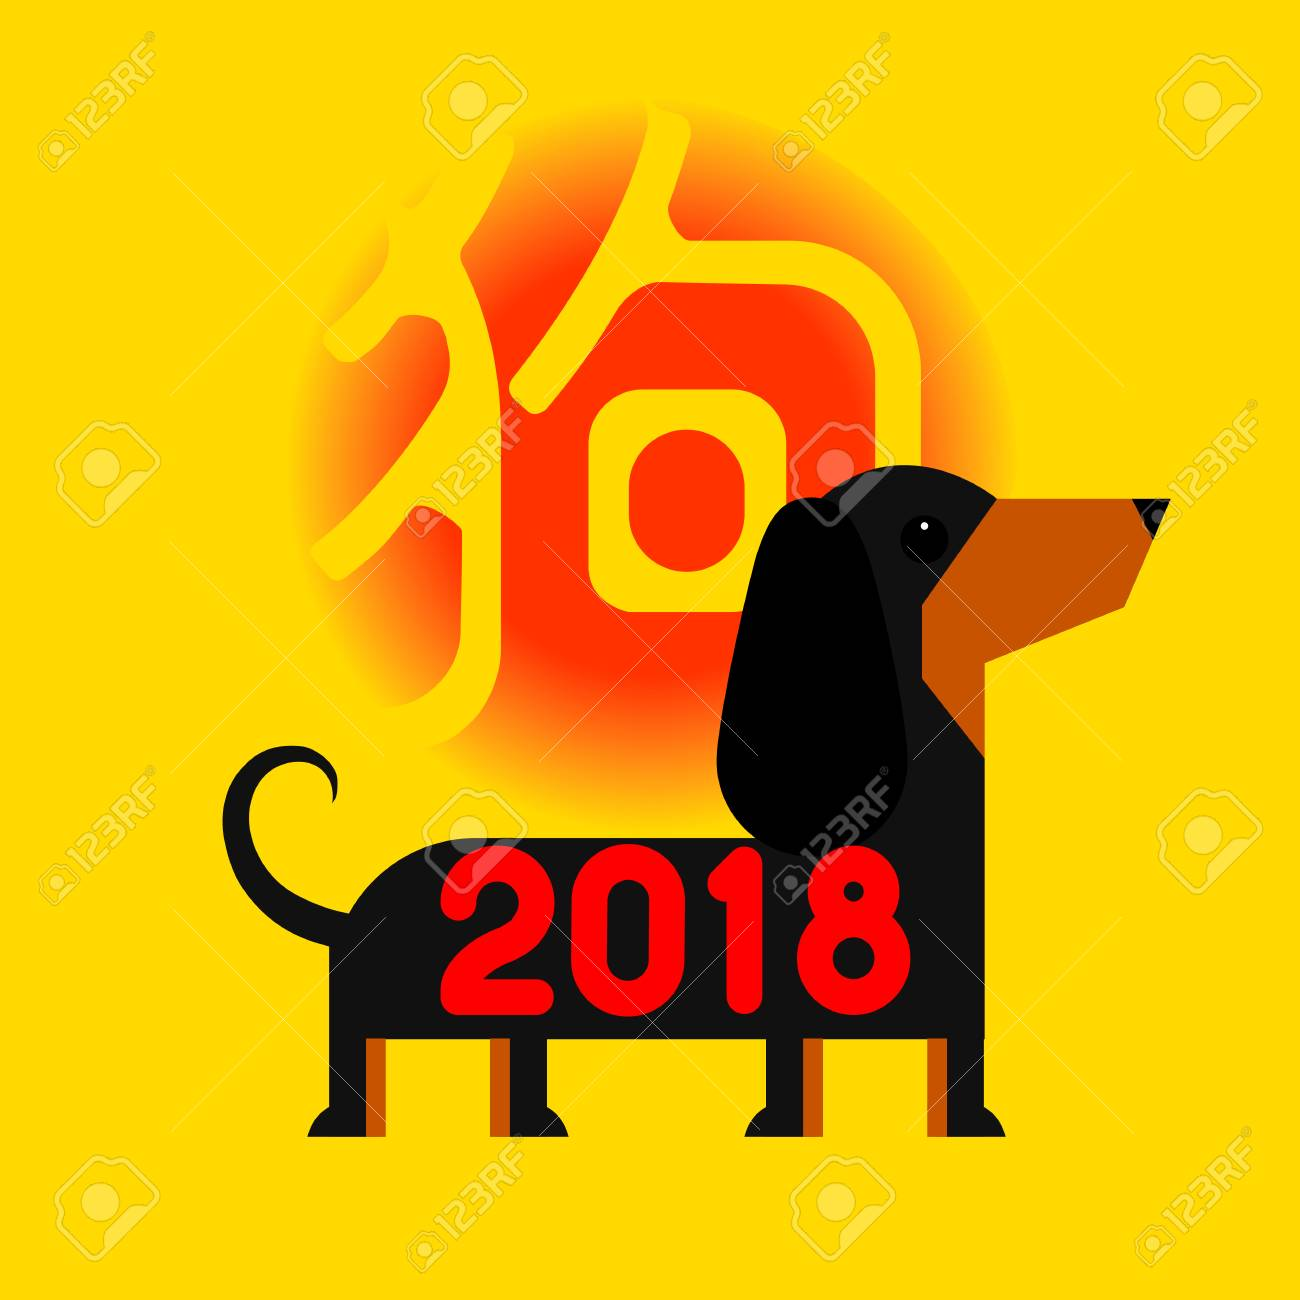 2018 Happy New Year Greeting Card Celebration Background With